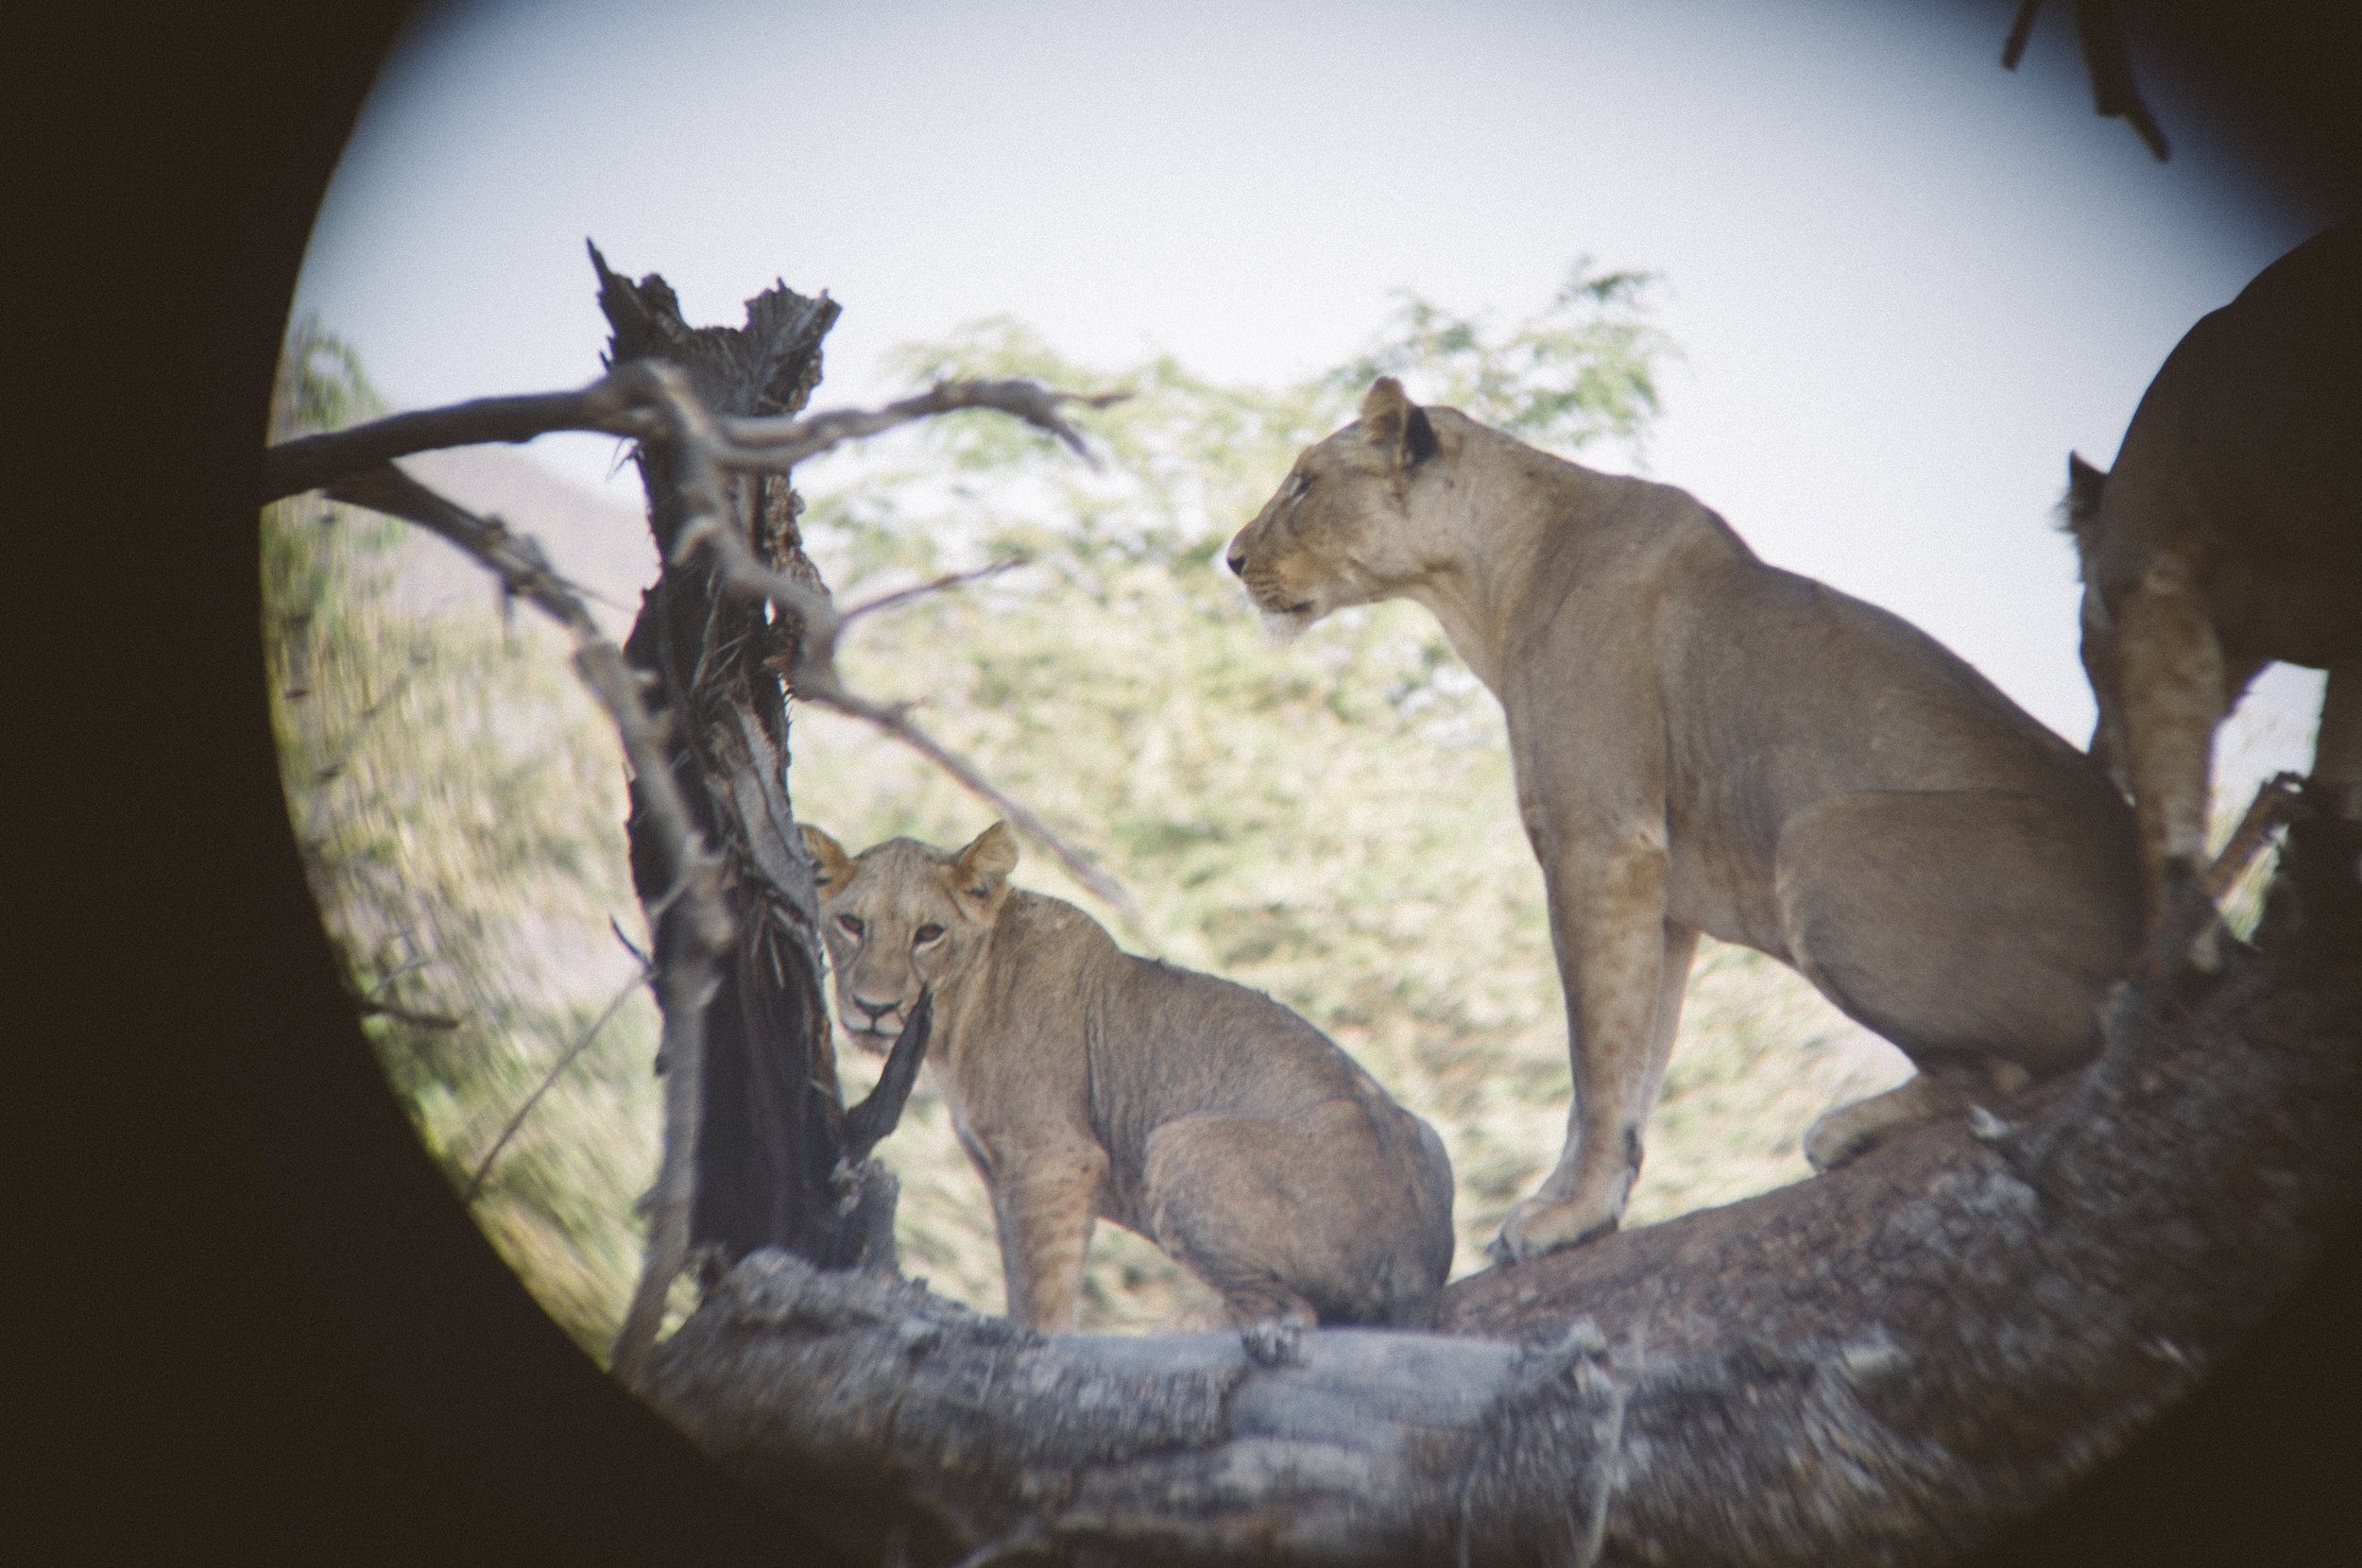 Lions in the scrub_5_through binoculars.jpg